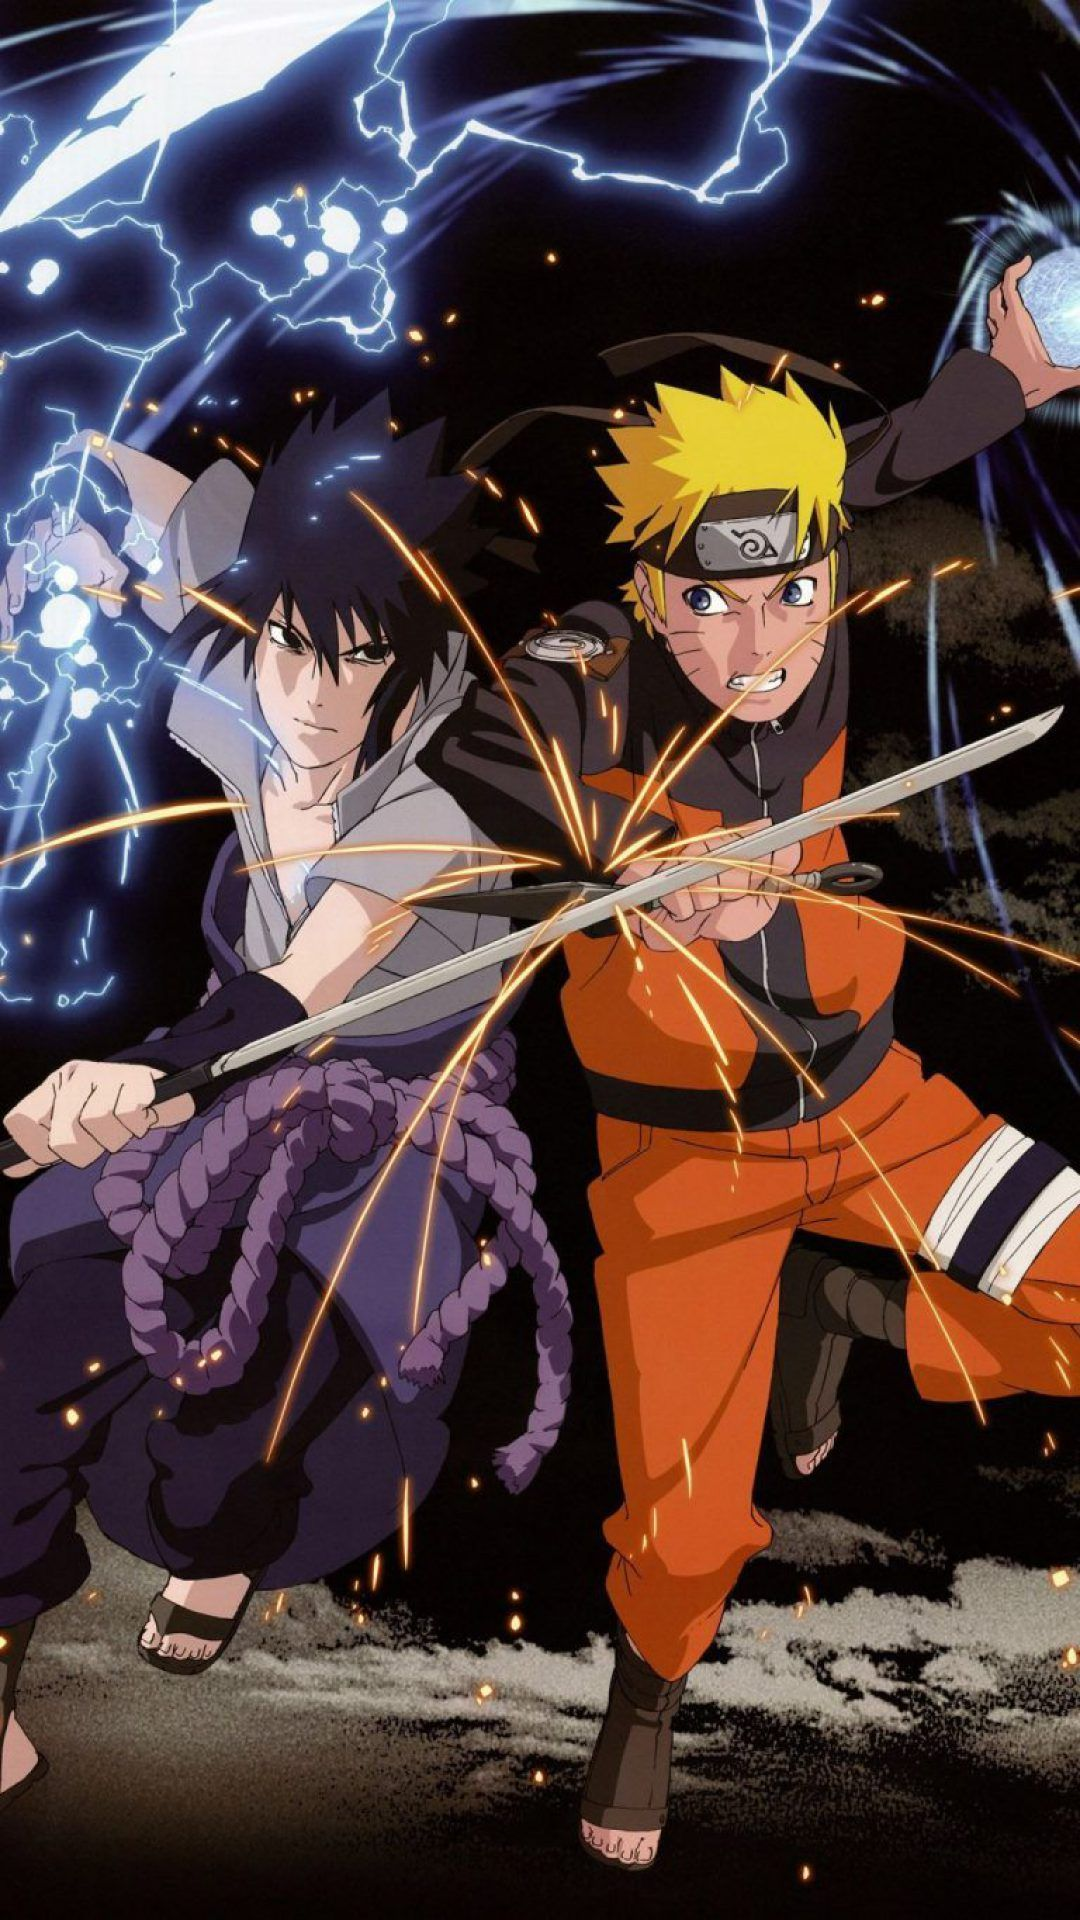 Sasuke Wallpaper High Resolution Hupages Download Iphone Wallpapers Naruto Wallpaper Naruto Vs Sasuke Naruto Dan Sasuke